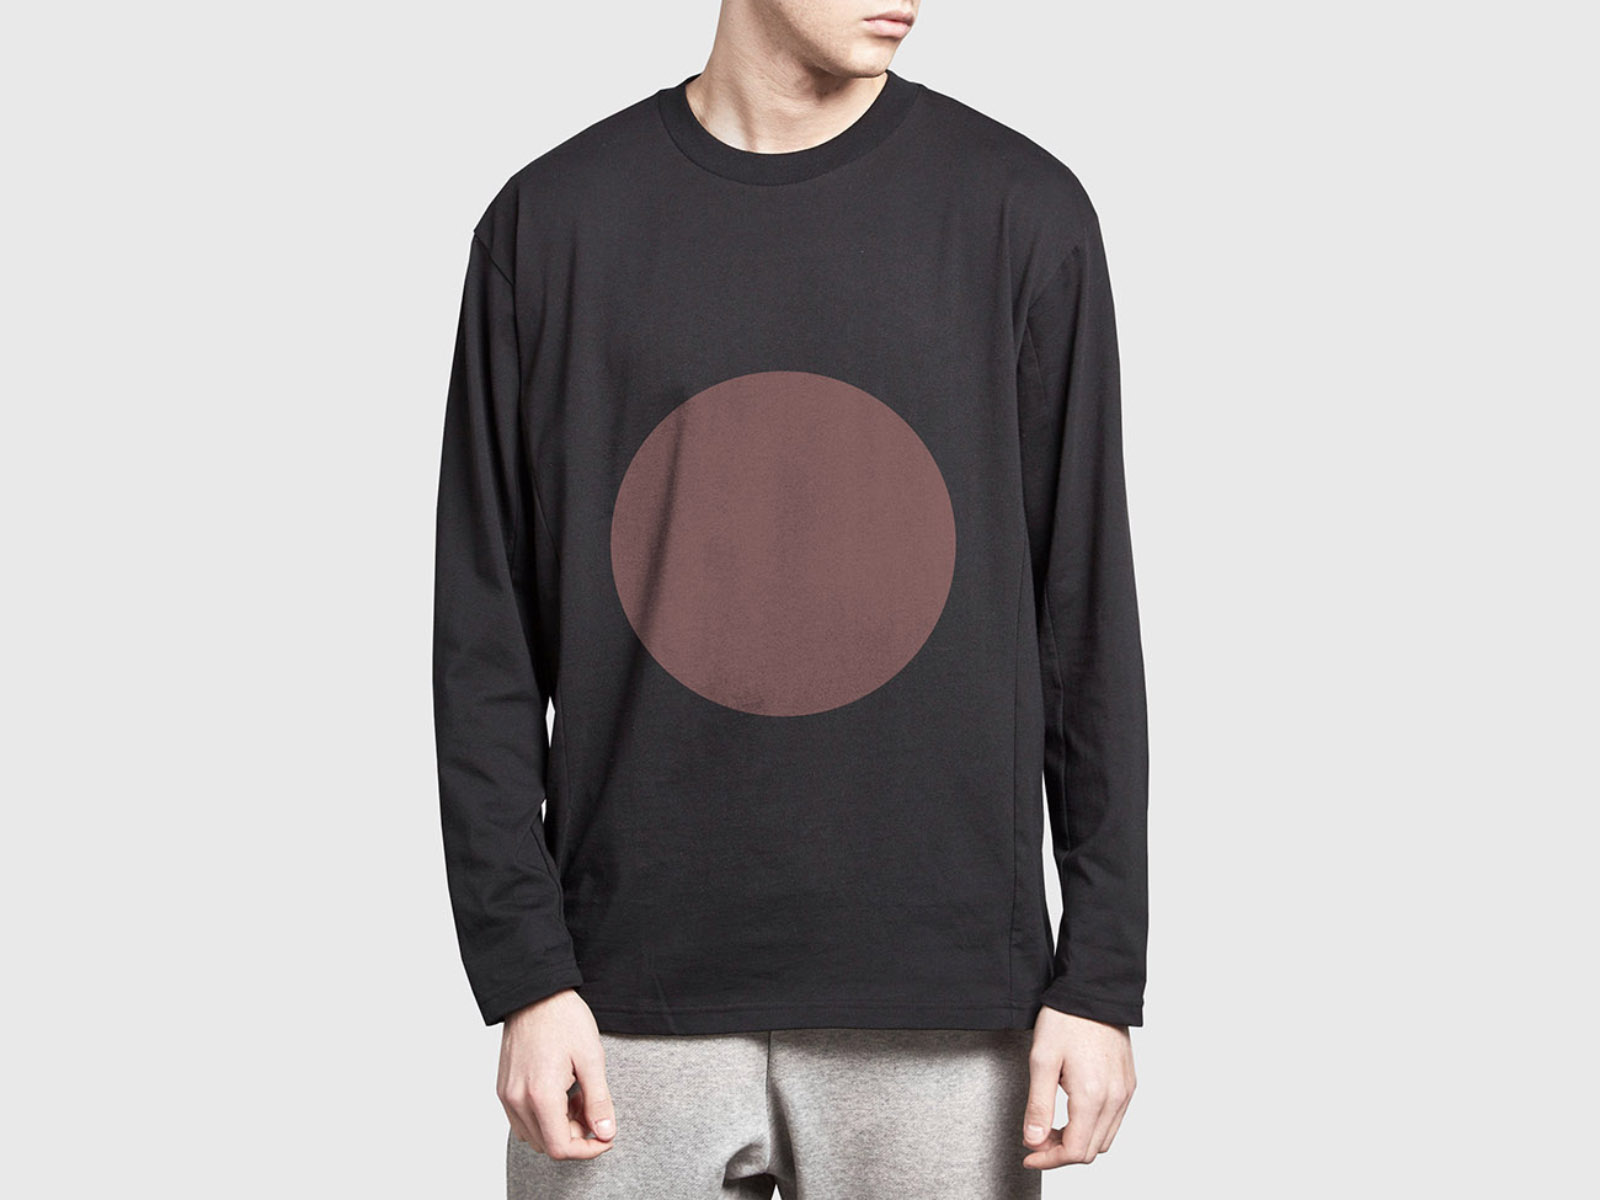 sweatshirt mockup for men